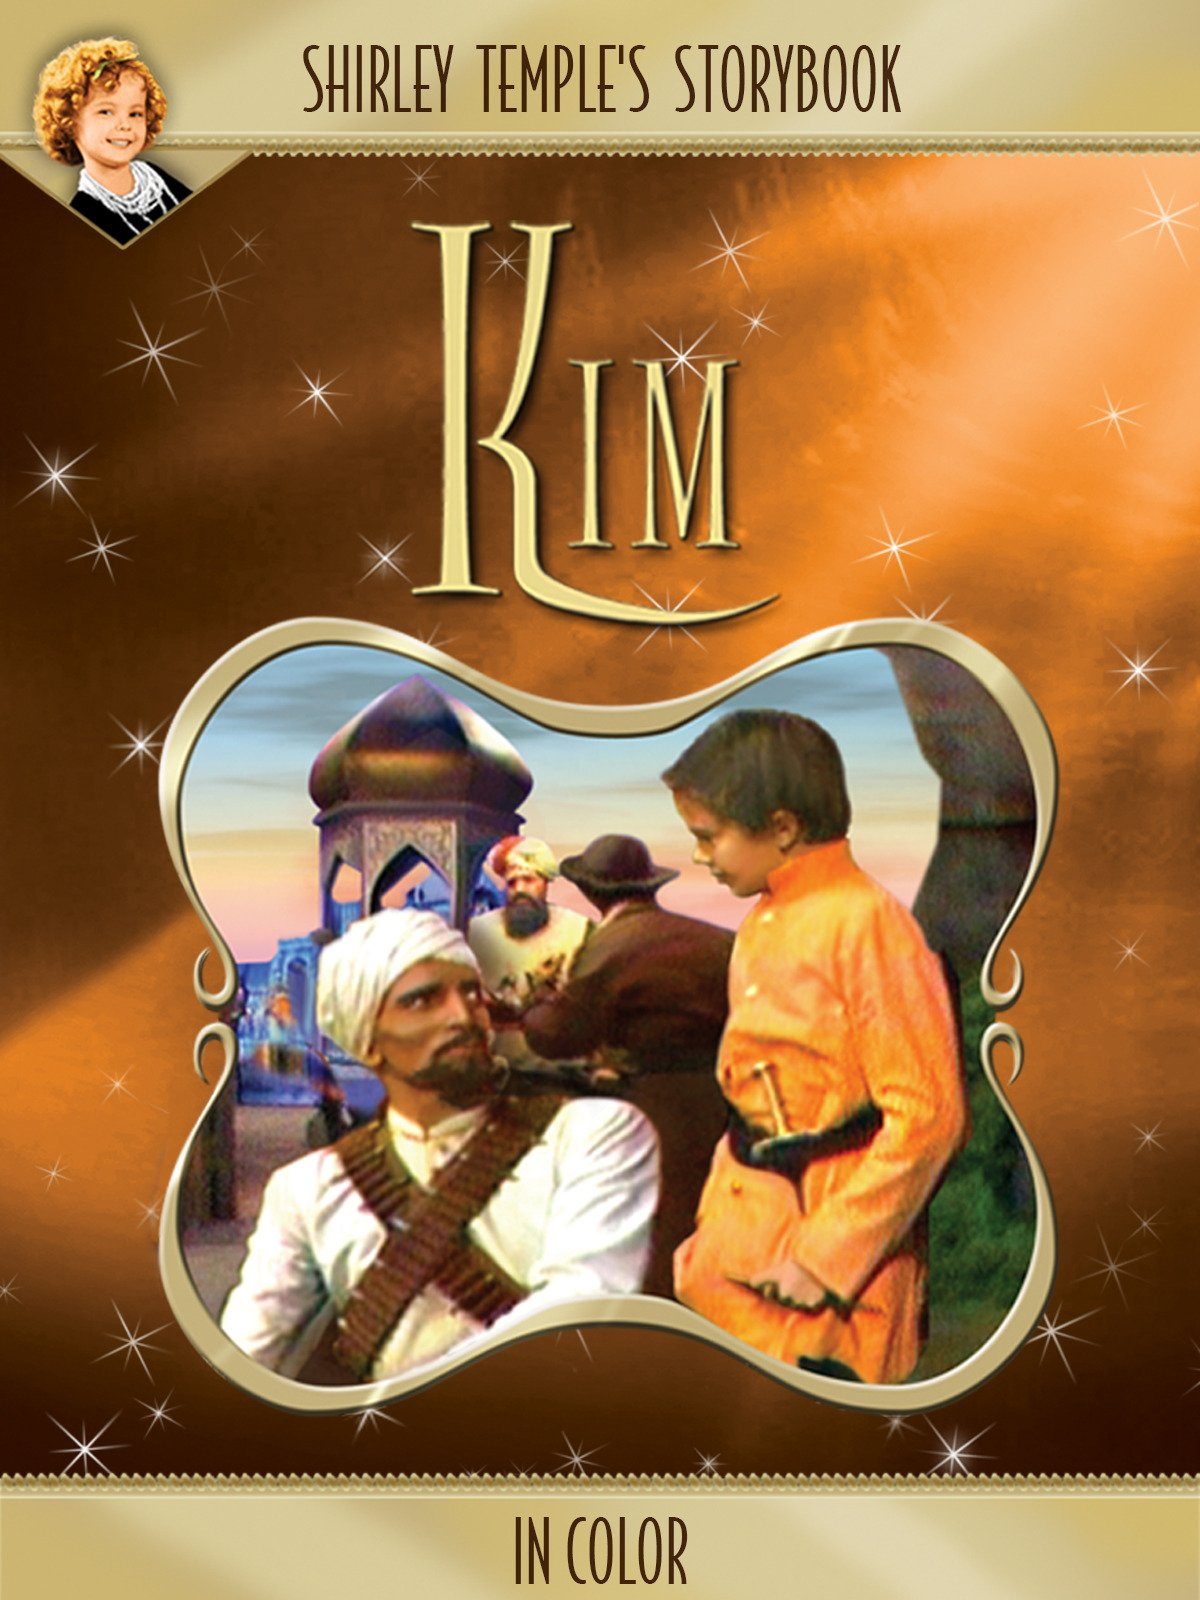 Shriely Temple's Storybook: Kim (in Color)